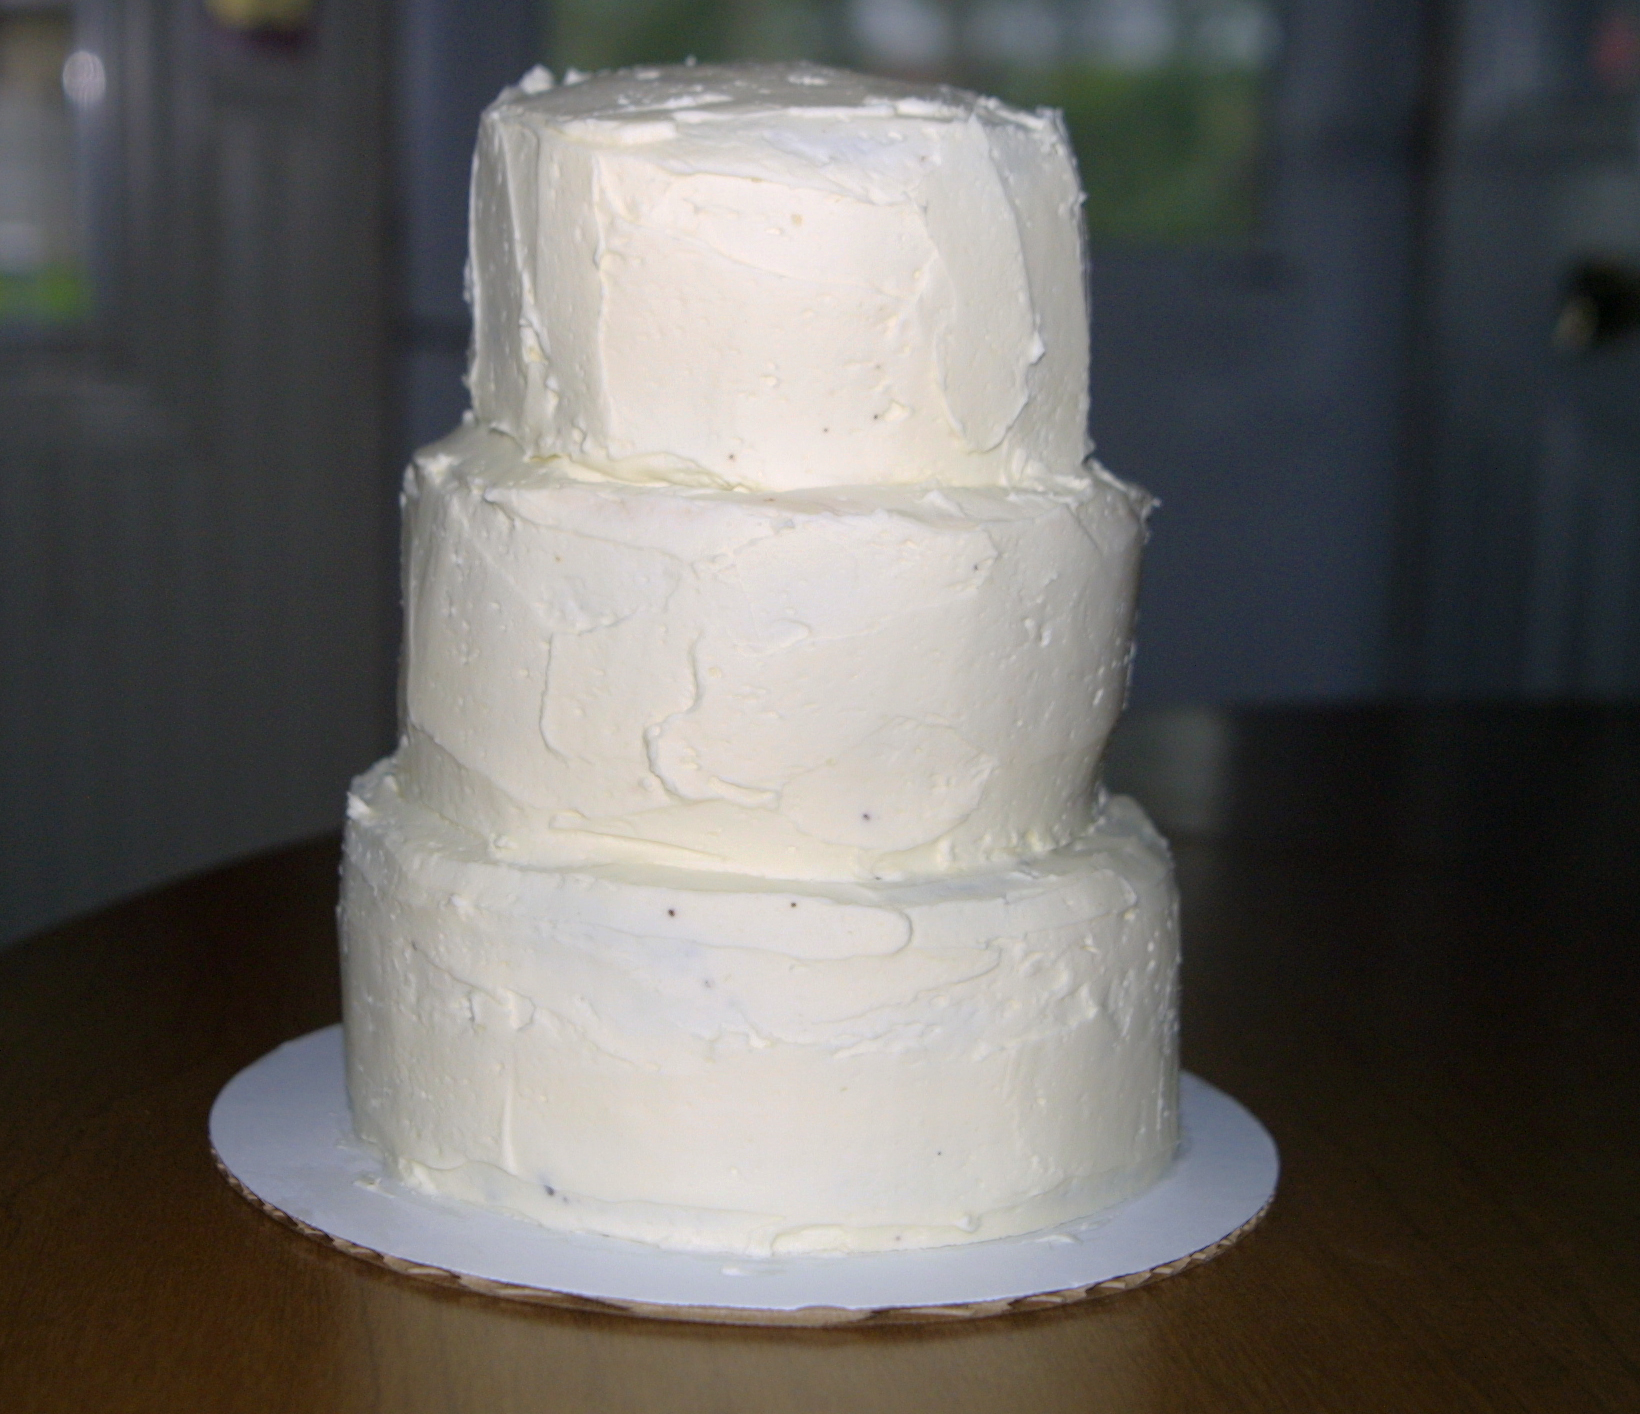 The wedding cake that wasn't